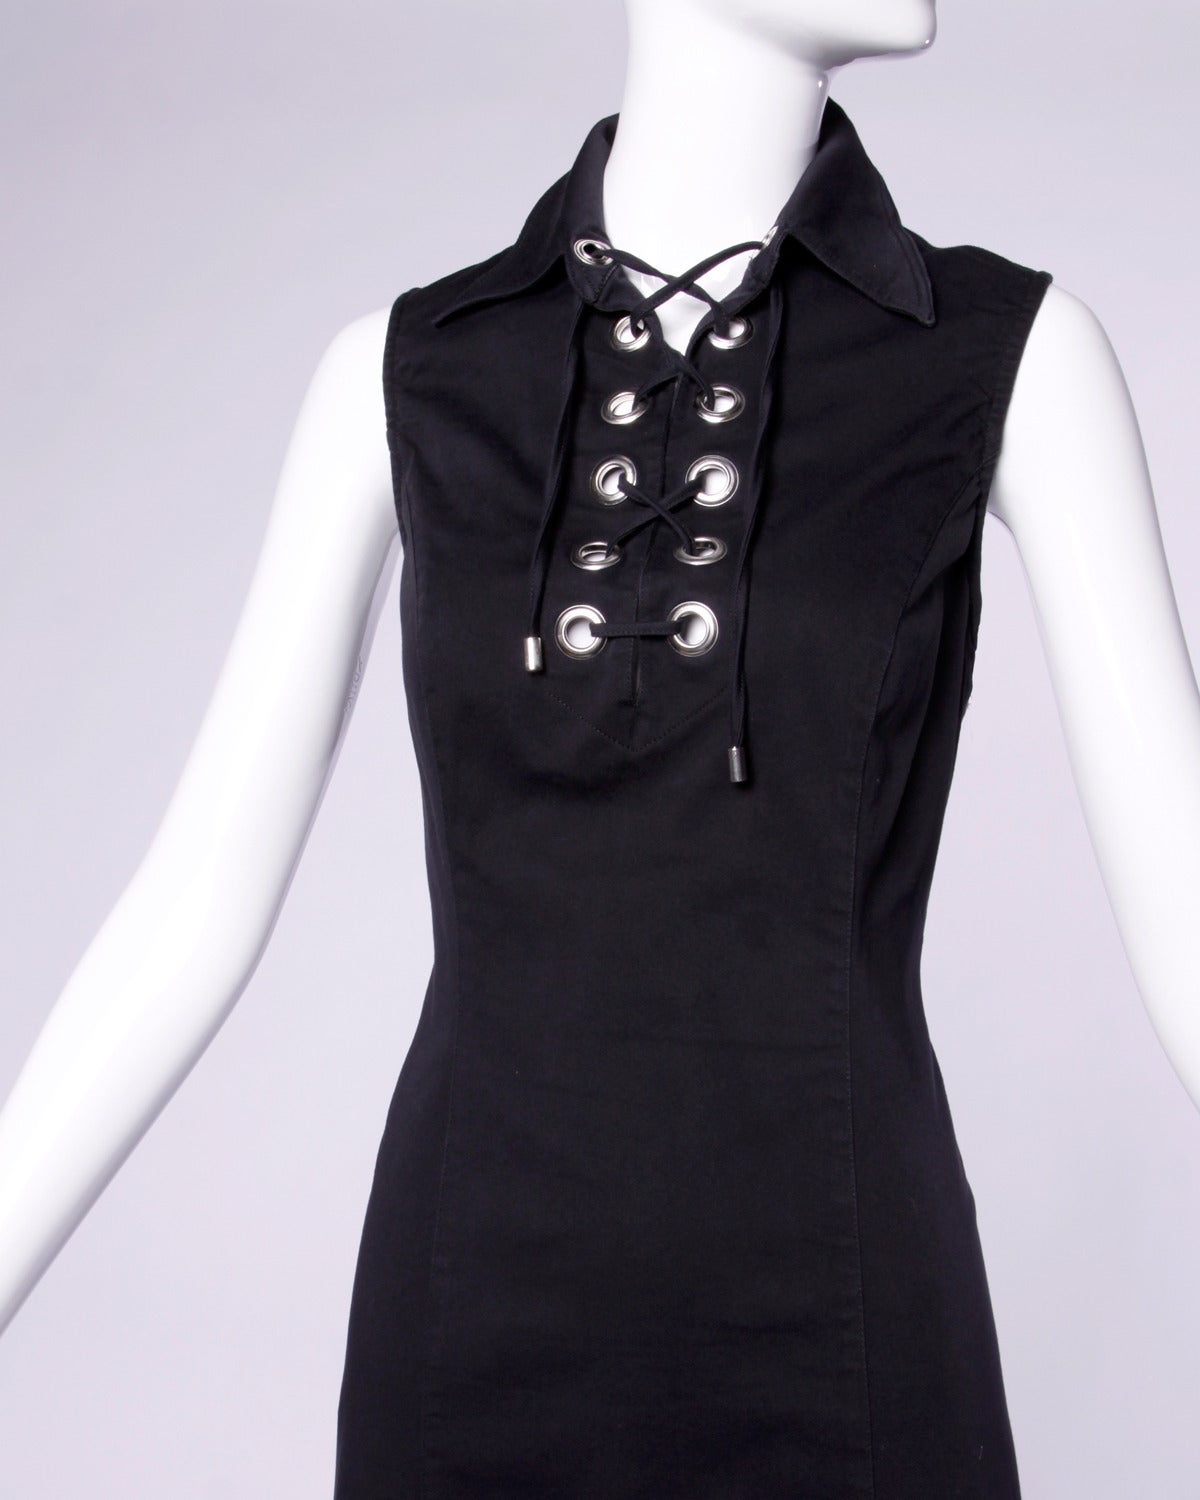 Moschino Vintage 1990s 90s Black Lace Up Grommet Sheath Dress 3